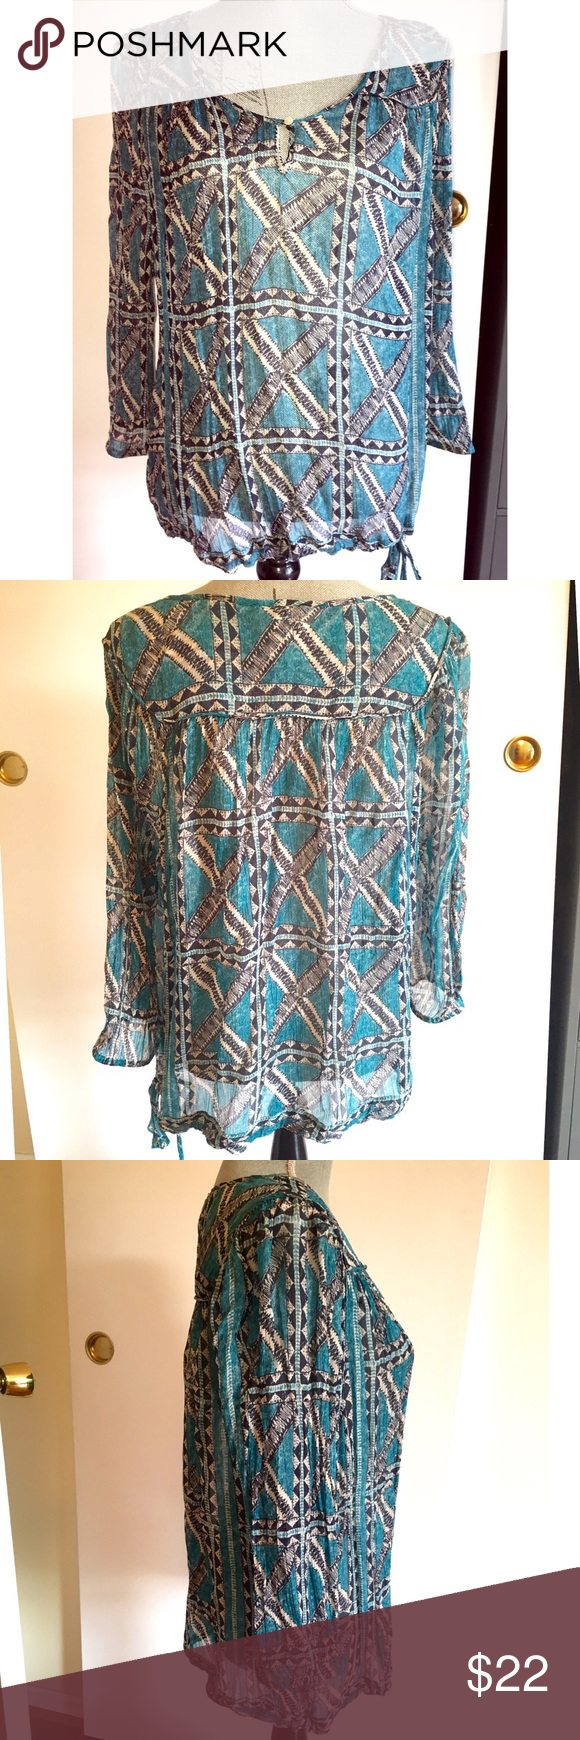 Semi Sheer Peter Dunham for Lucky Brand blouse Beautiful Crinkled Teal, Ivory and Navy Geometric printed blouse. Tie waist, lightly cinched 3/4 sleeve.  *Note -Care label  has been cut off since it was visible when worn - item is dry clean only.  Button loop at neck.   In Very Good shape, gently worn once. Lucky Brand Tops Blouses